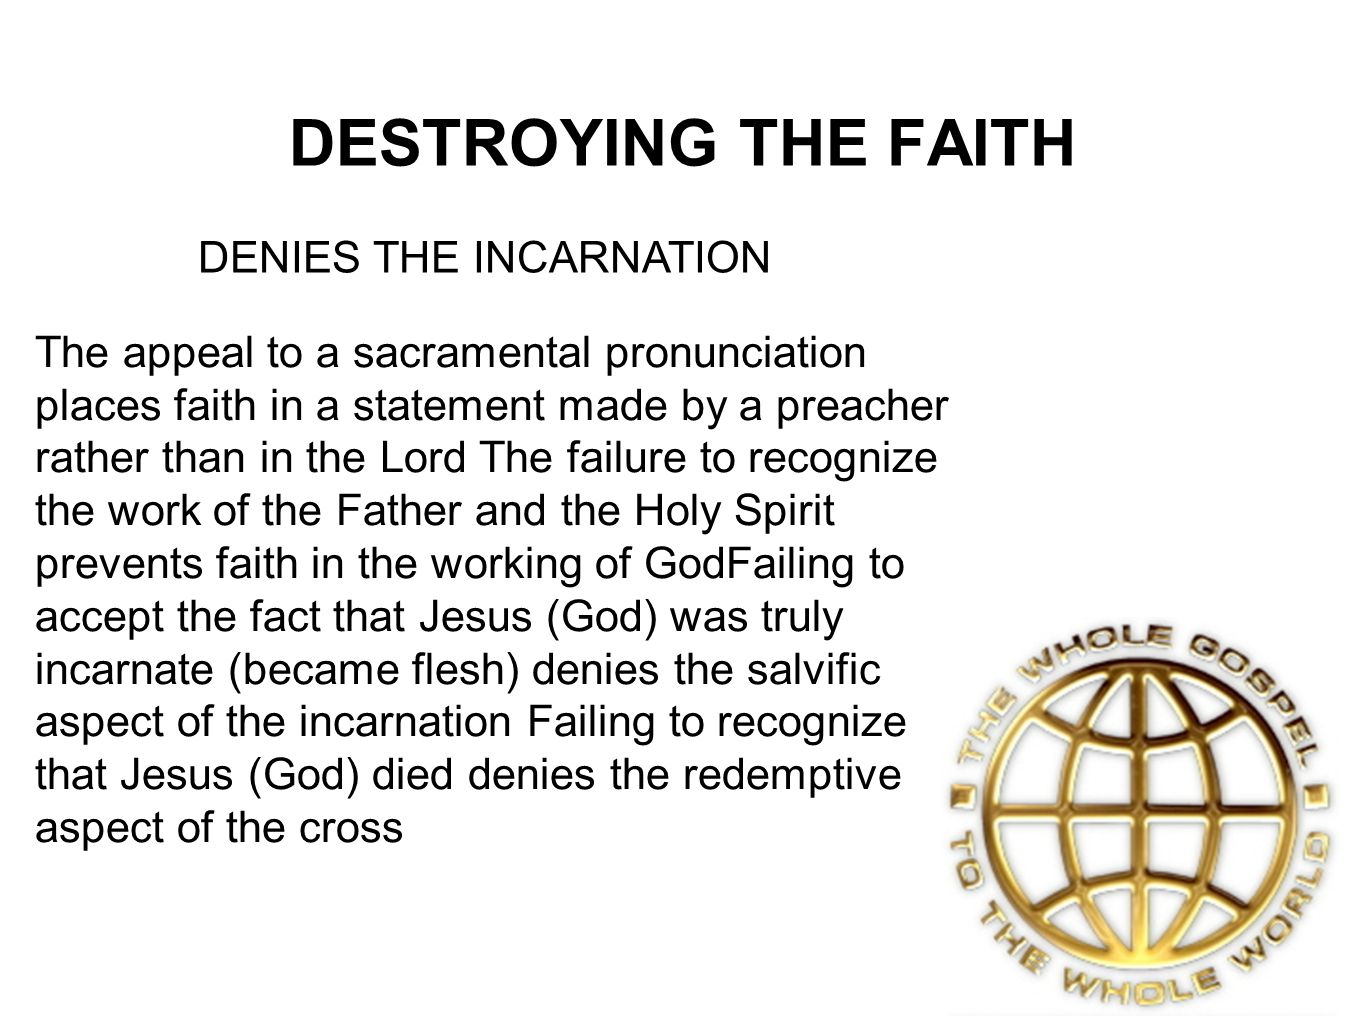 DESTROYING THE FAITH DENIES THE INCARNATION The appeal to a sacramental pronunciation places faith in a statement made by a preacher rather than in the Lord The failure to recognize the work of the Father and the Holy Spirit prevents faith in the working of GodFailing to accept the fact that Jesus (God) was truly incarnate (became flesh) denies the salvific aspect of the incarnation Failing to recognize that Jesus (God) died denies the redemptive aspect of the cross